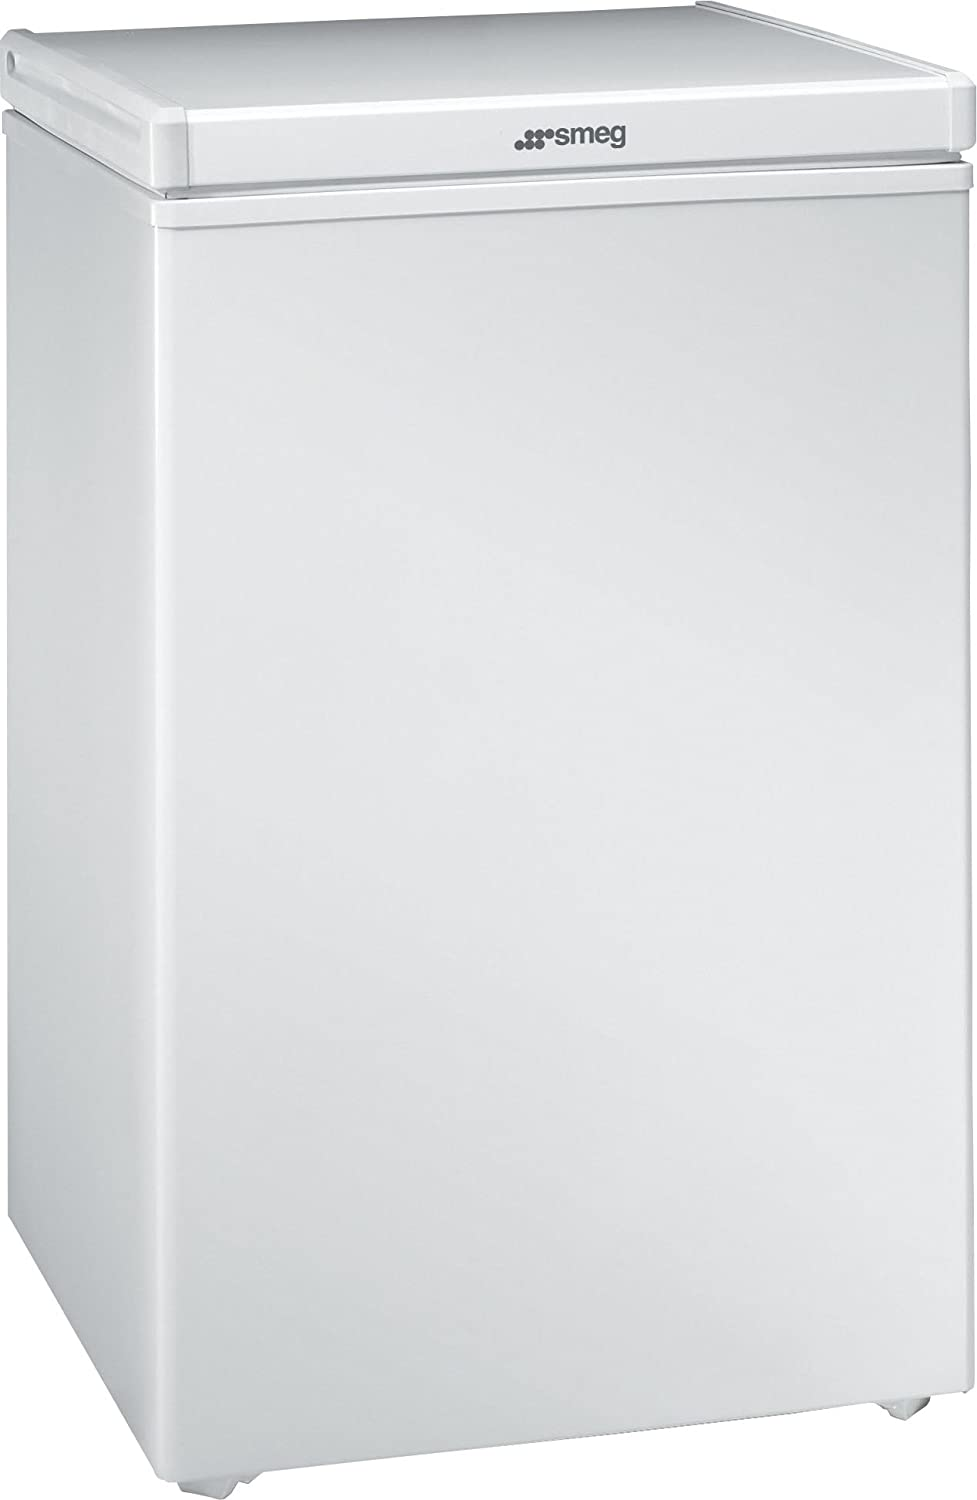 Smeg CO103 Freestanding Chest 104L A + White – Freezer (Freestanding, Chest, White, 4 *, A +) [Energy Class A+]